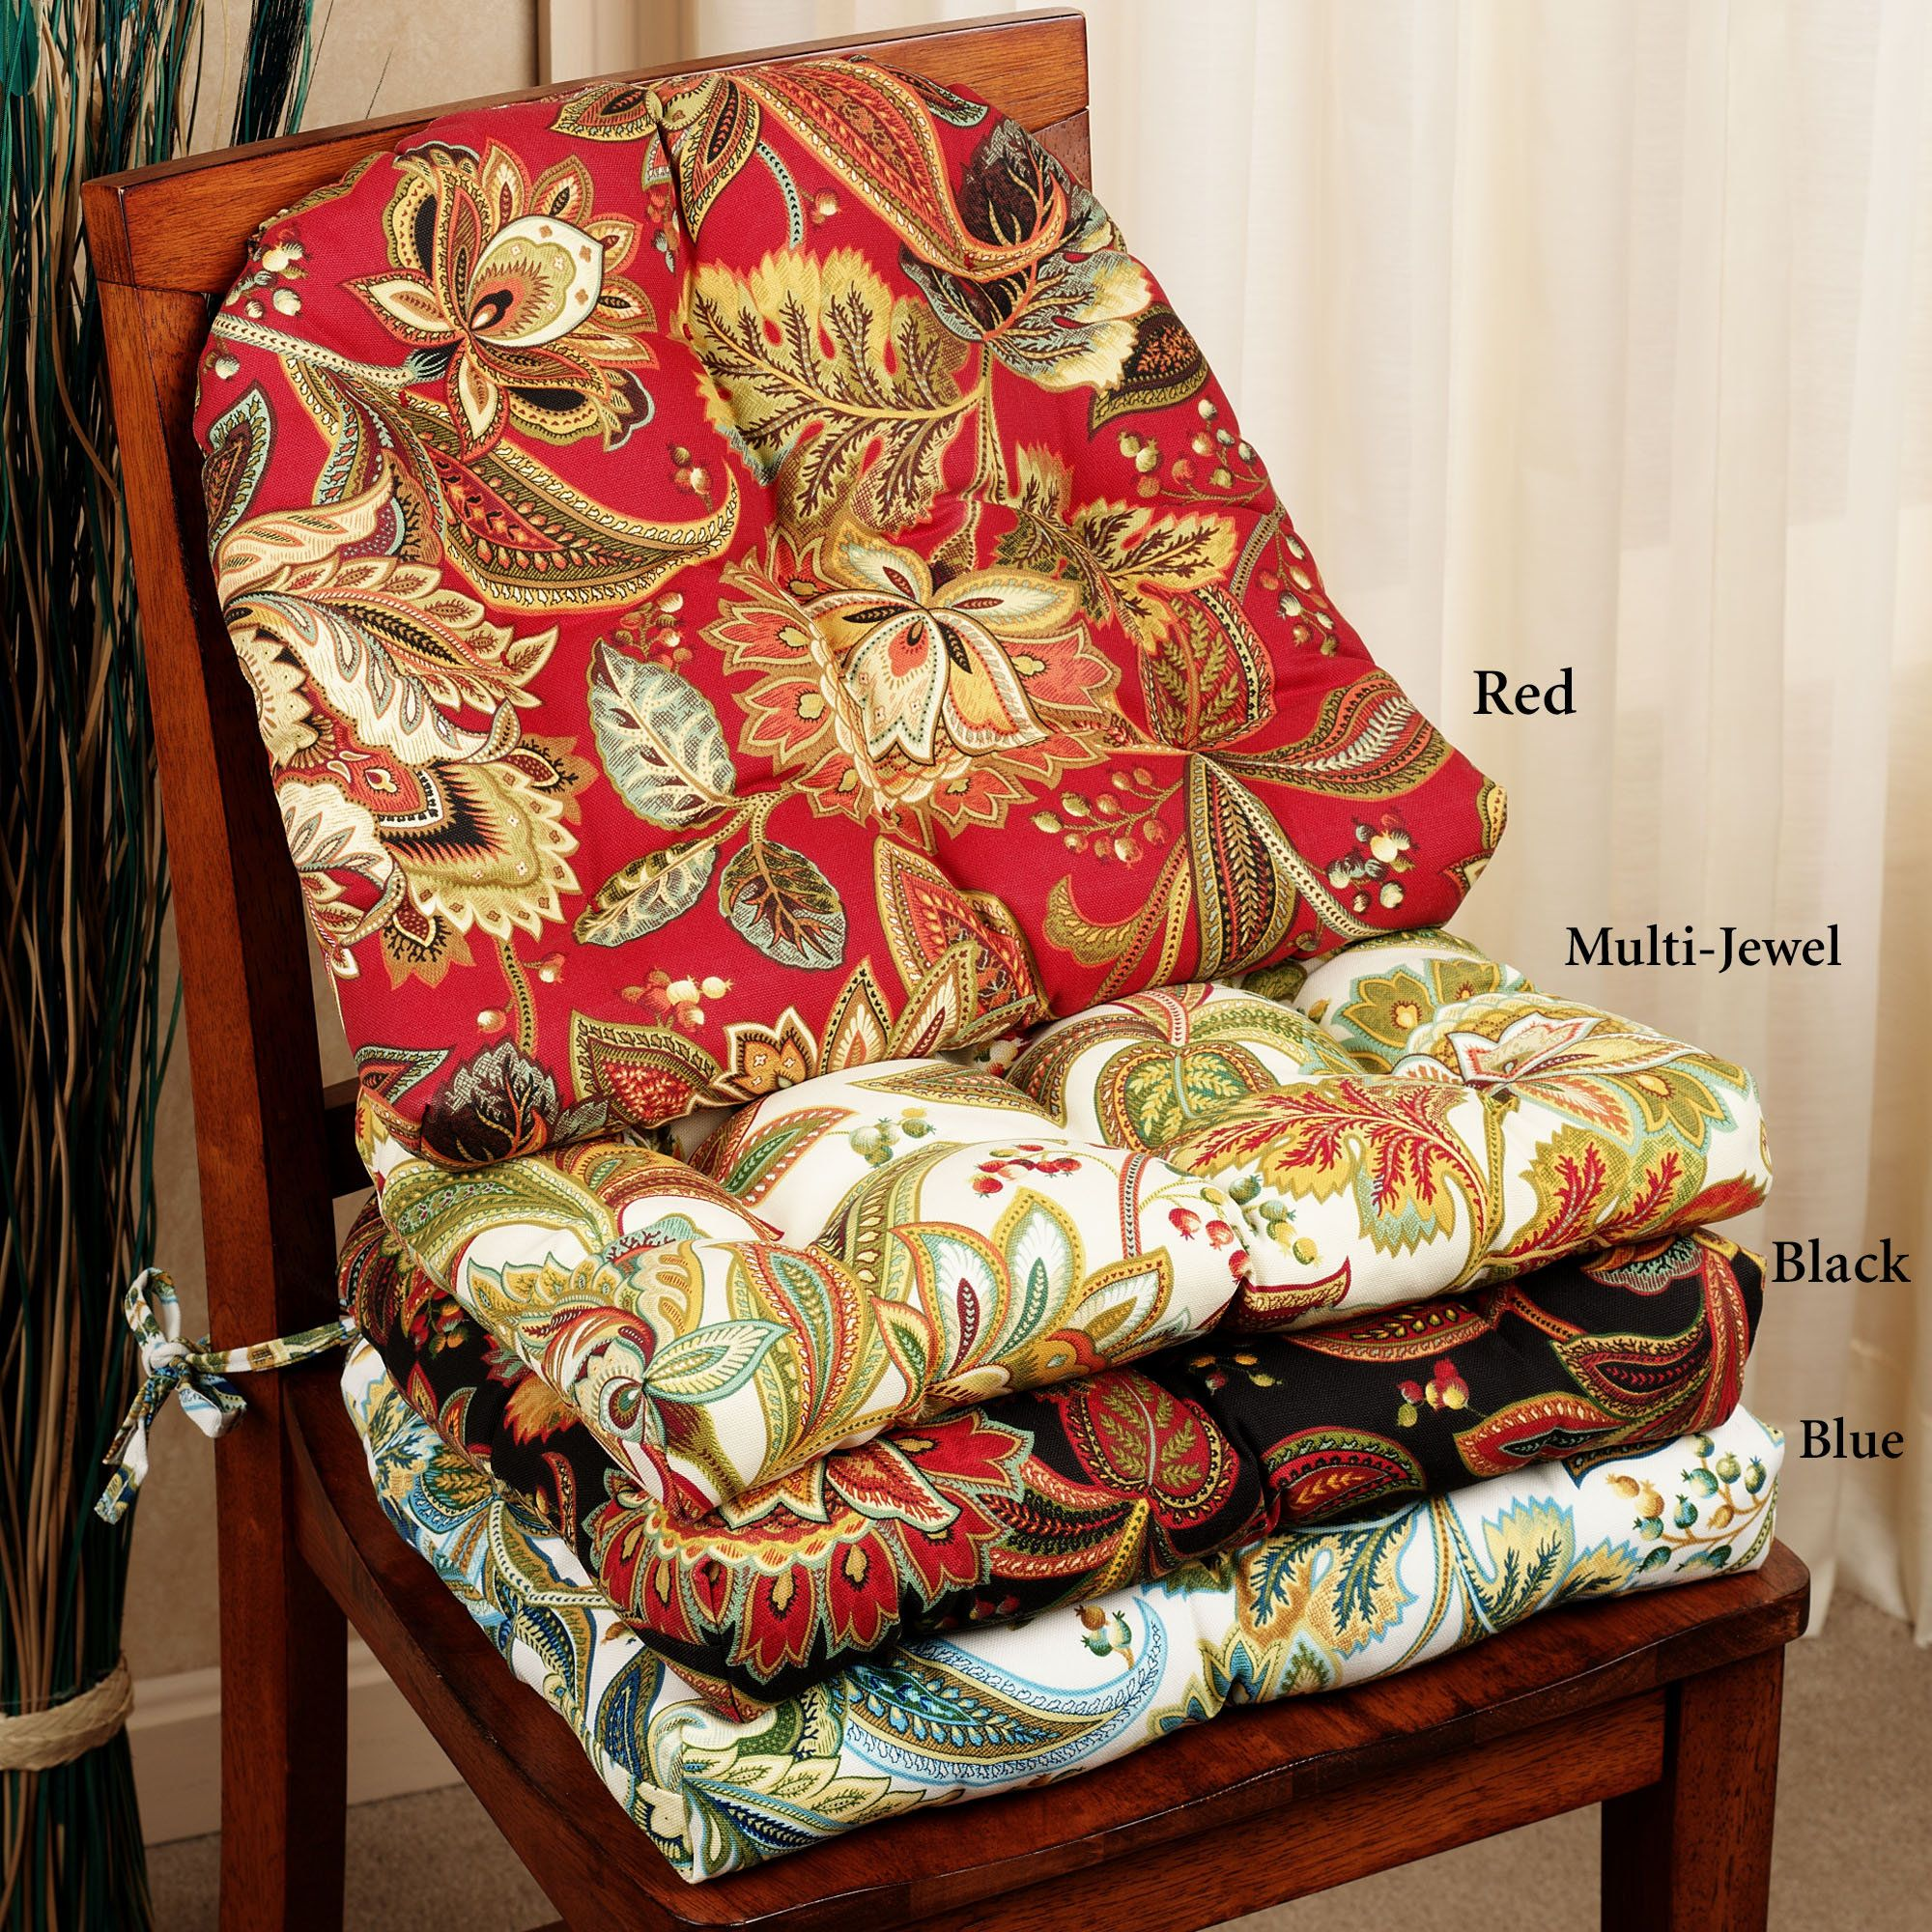 Give Your Indoor Or Outdoor Chairs New Life With The Valbella Jacobean  Floral Indoor/Outdoor Chair Cushion Set. Chair Cushions Are Reversible.